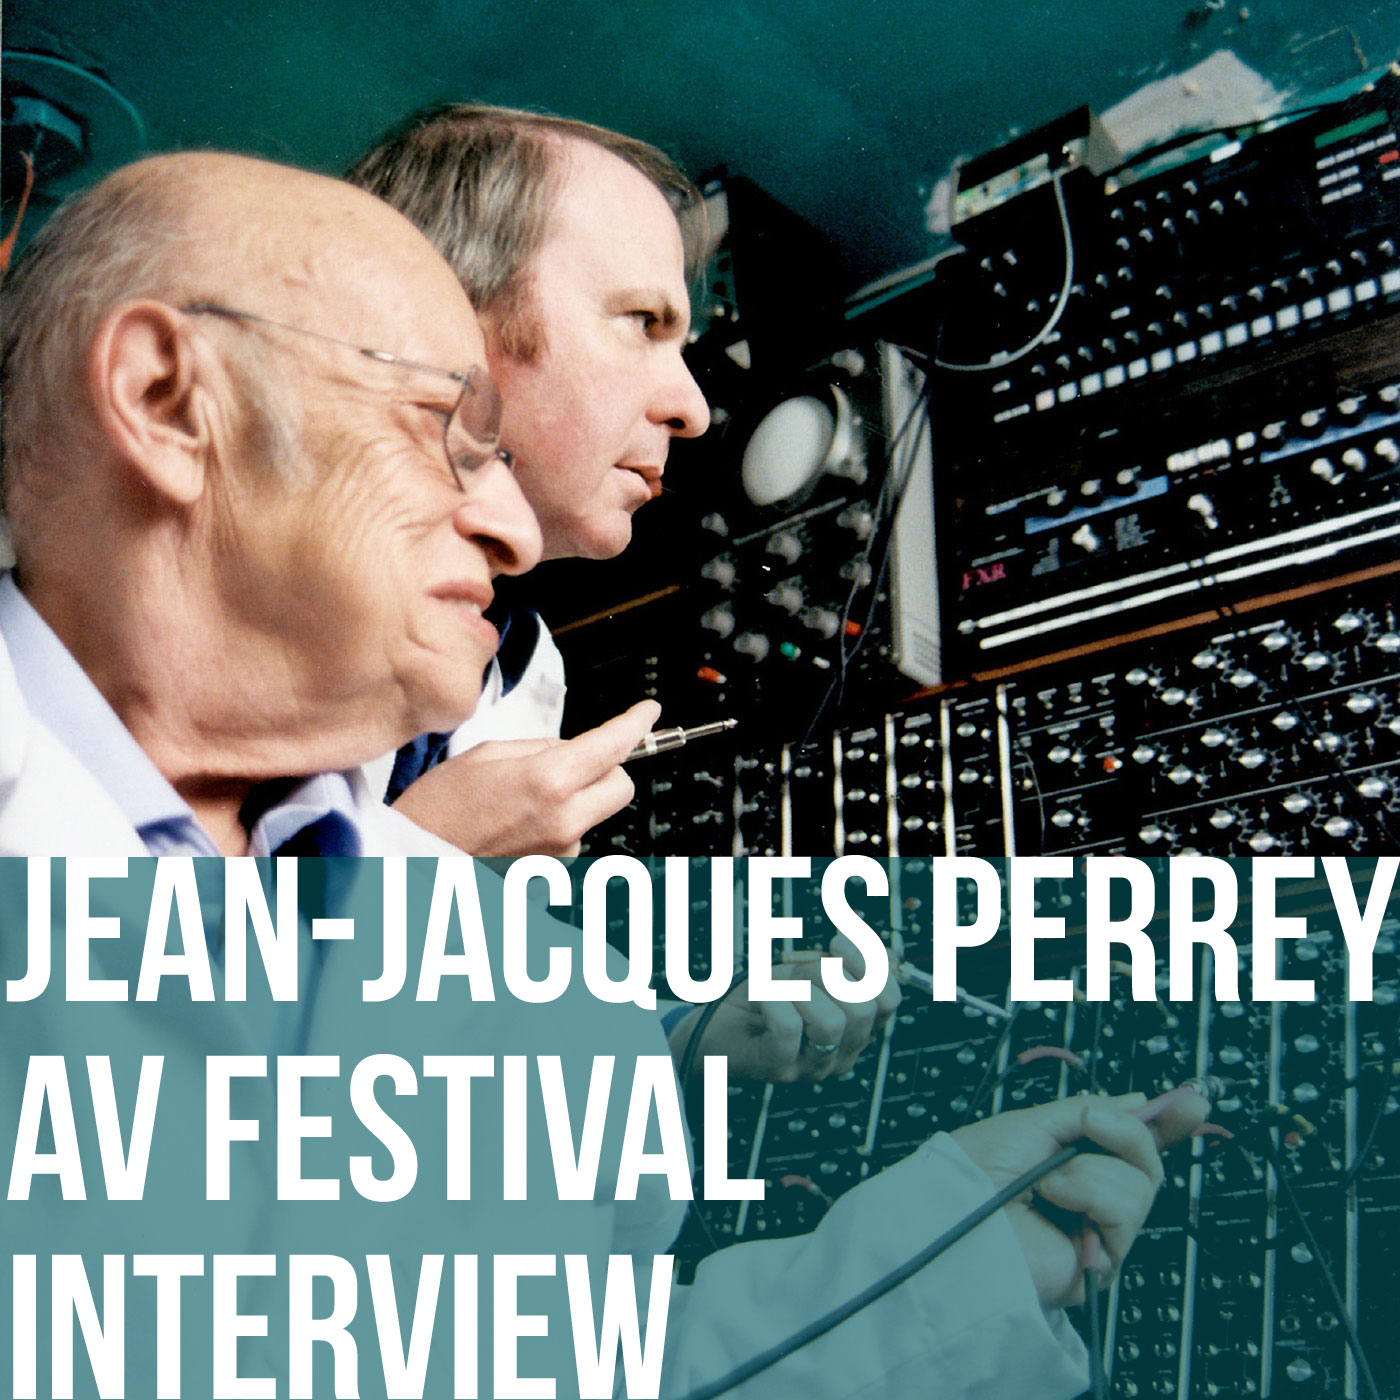 Jean-Jacques Perrey AV Festival interview